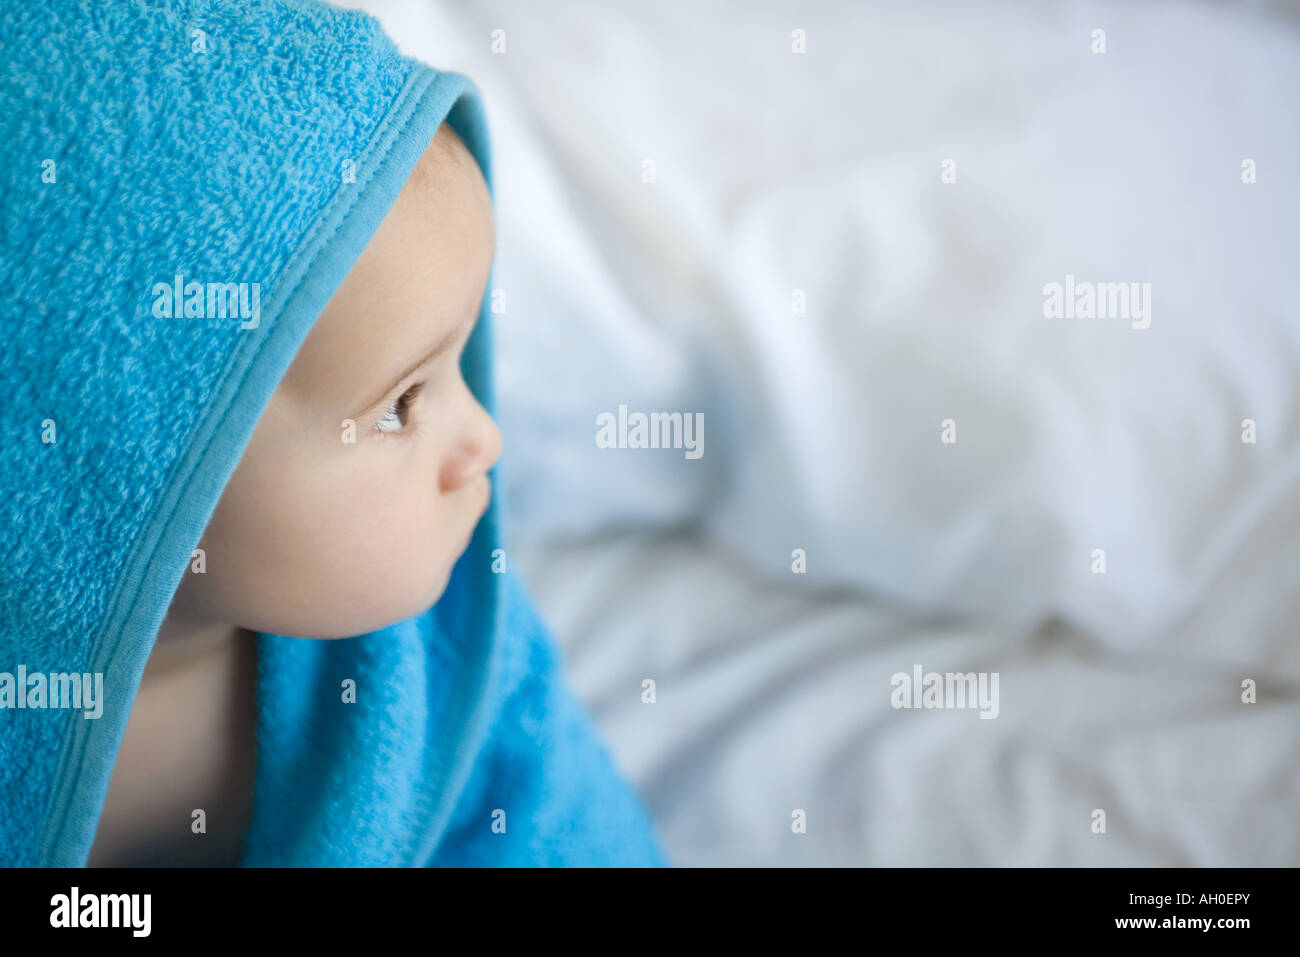 Baby wrapped in towel, looking away - Stock Image